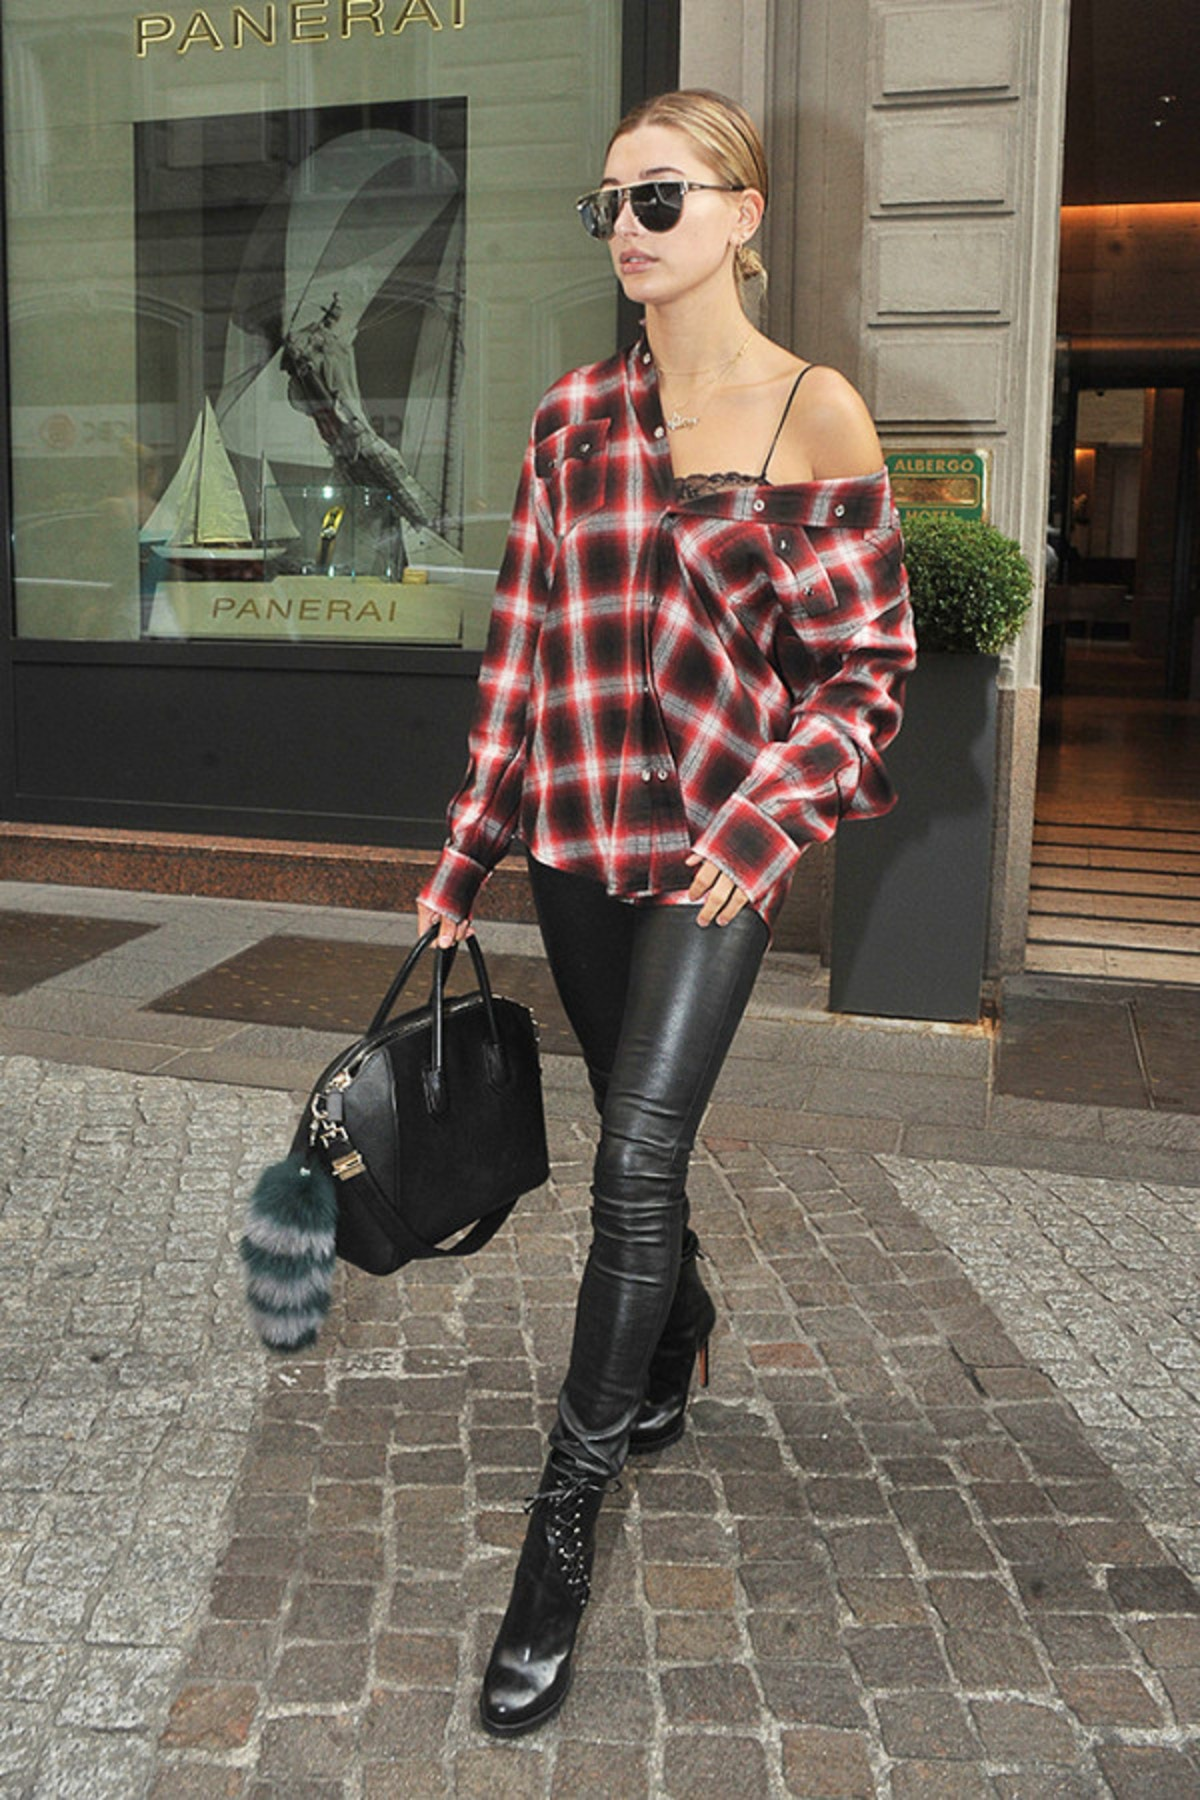 5-perfect-fall-outfit-ideasall-from-hailey-baldwin-2005505.600x0c